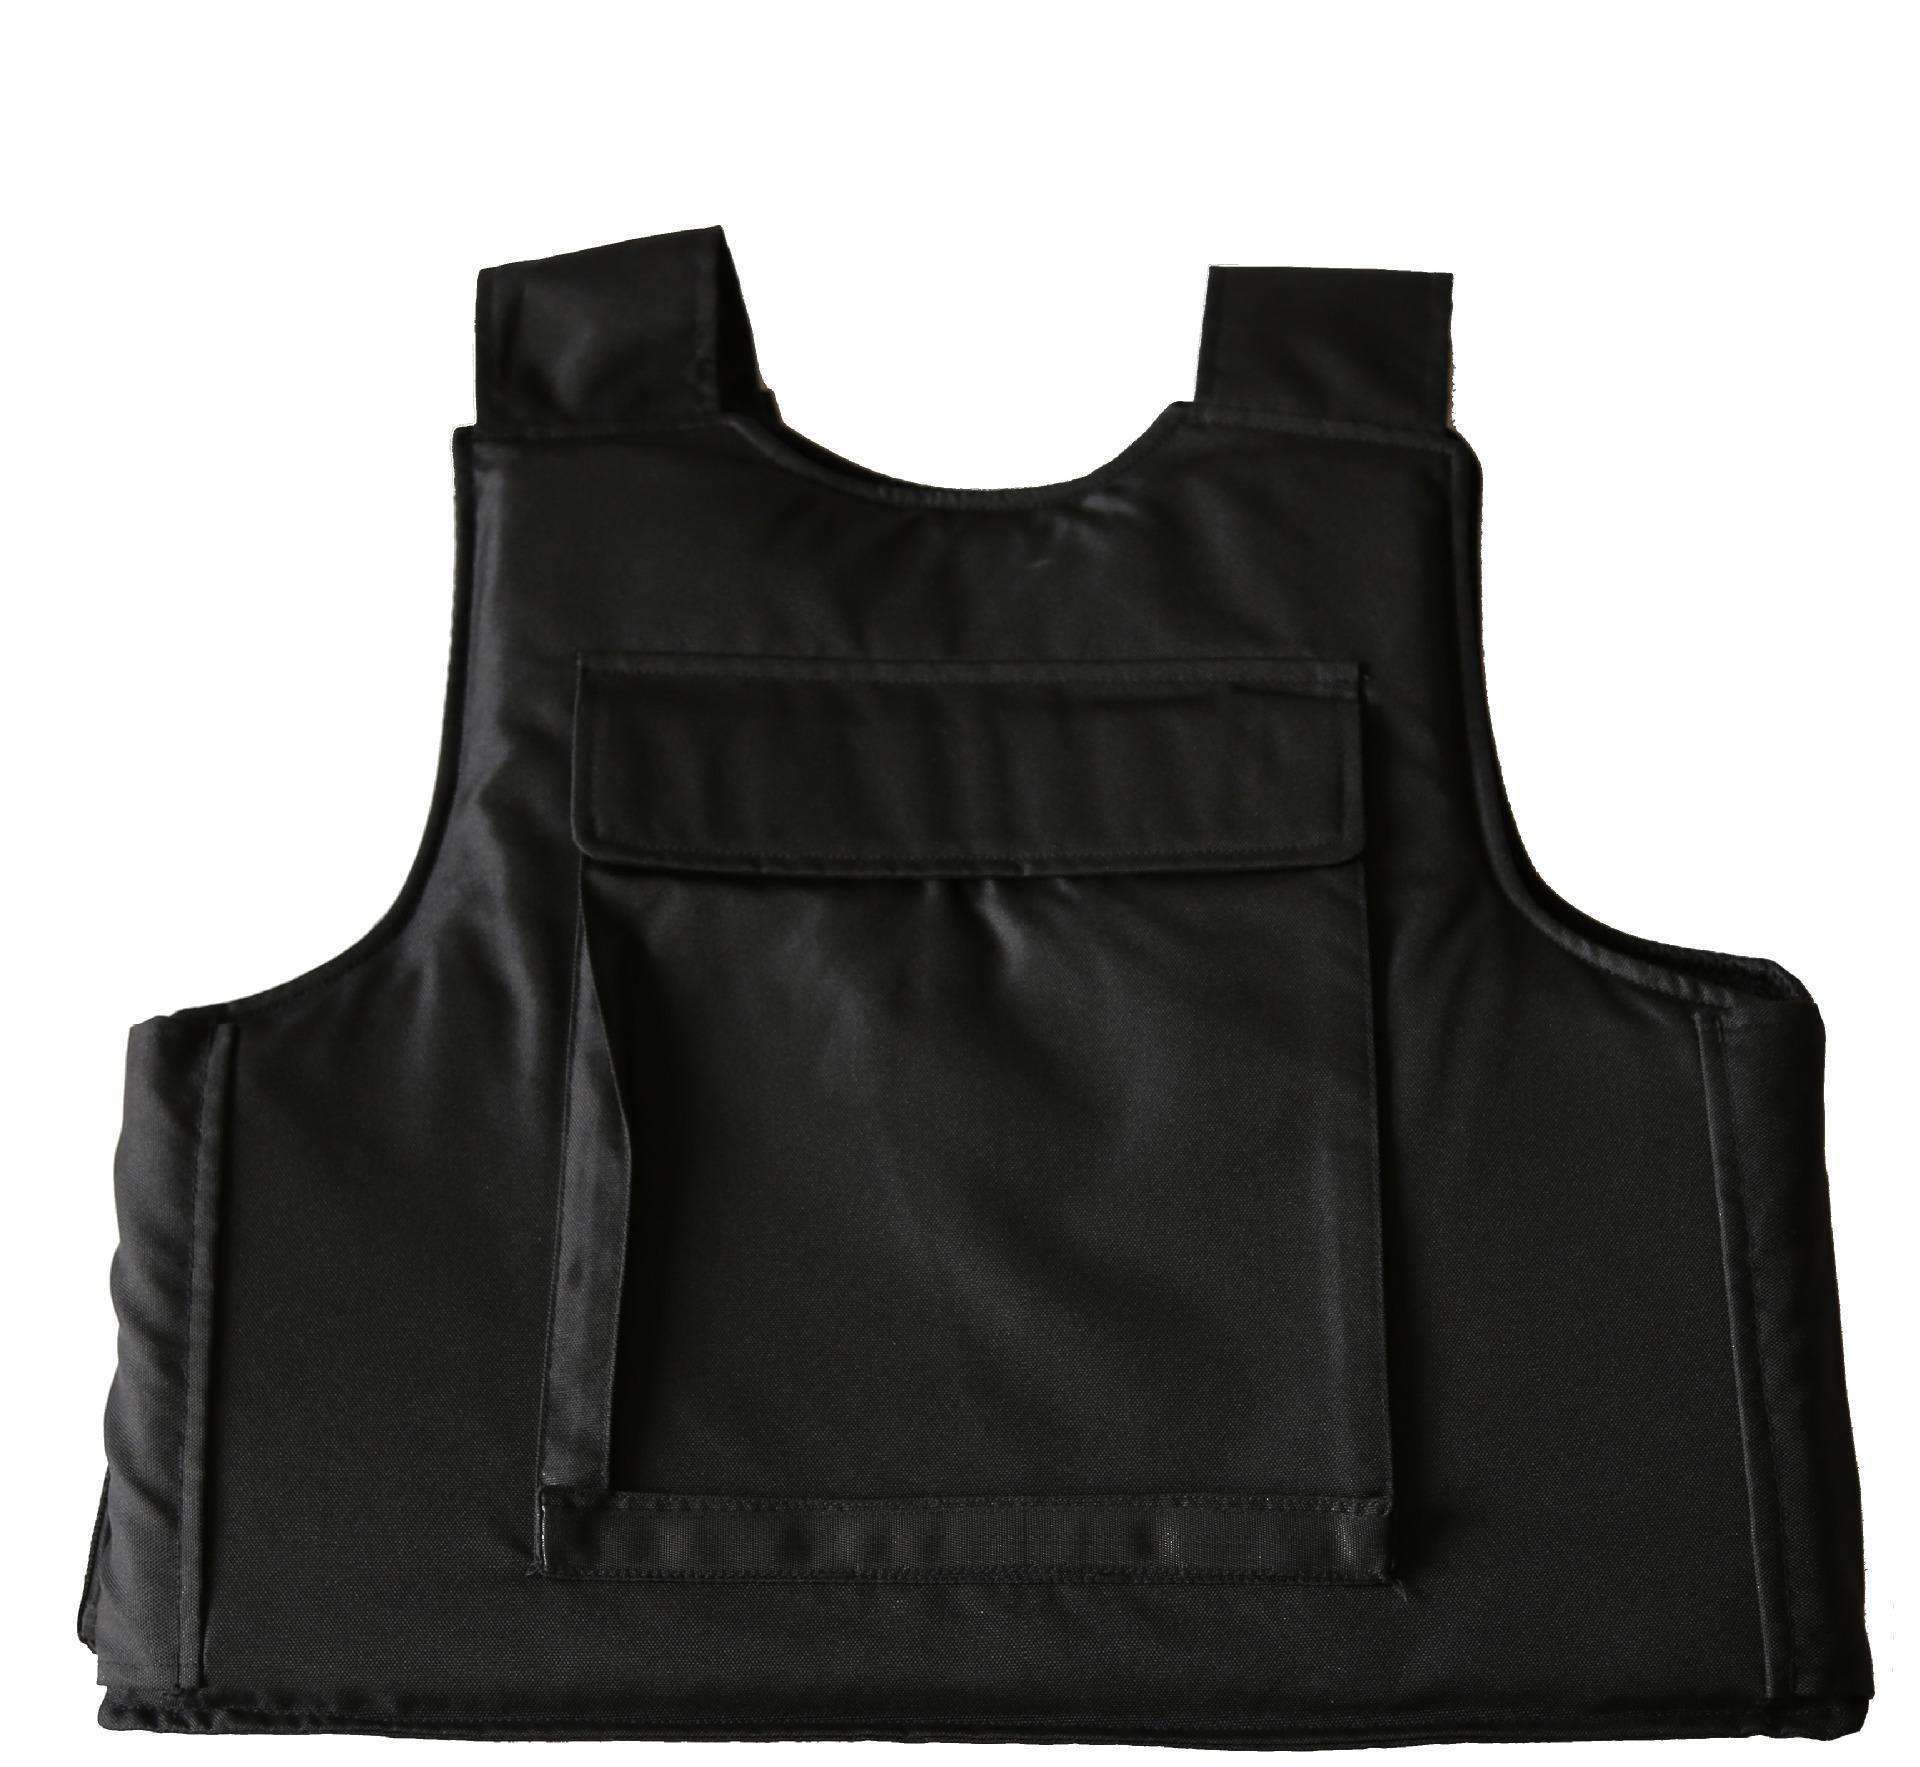 Senken Nij III a Tactical Police Military Bulletproof Vest pictures & photos